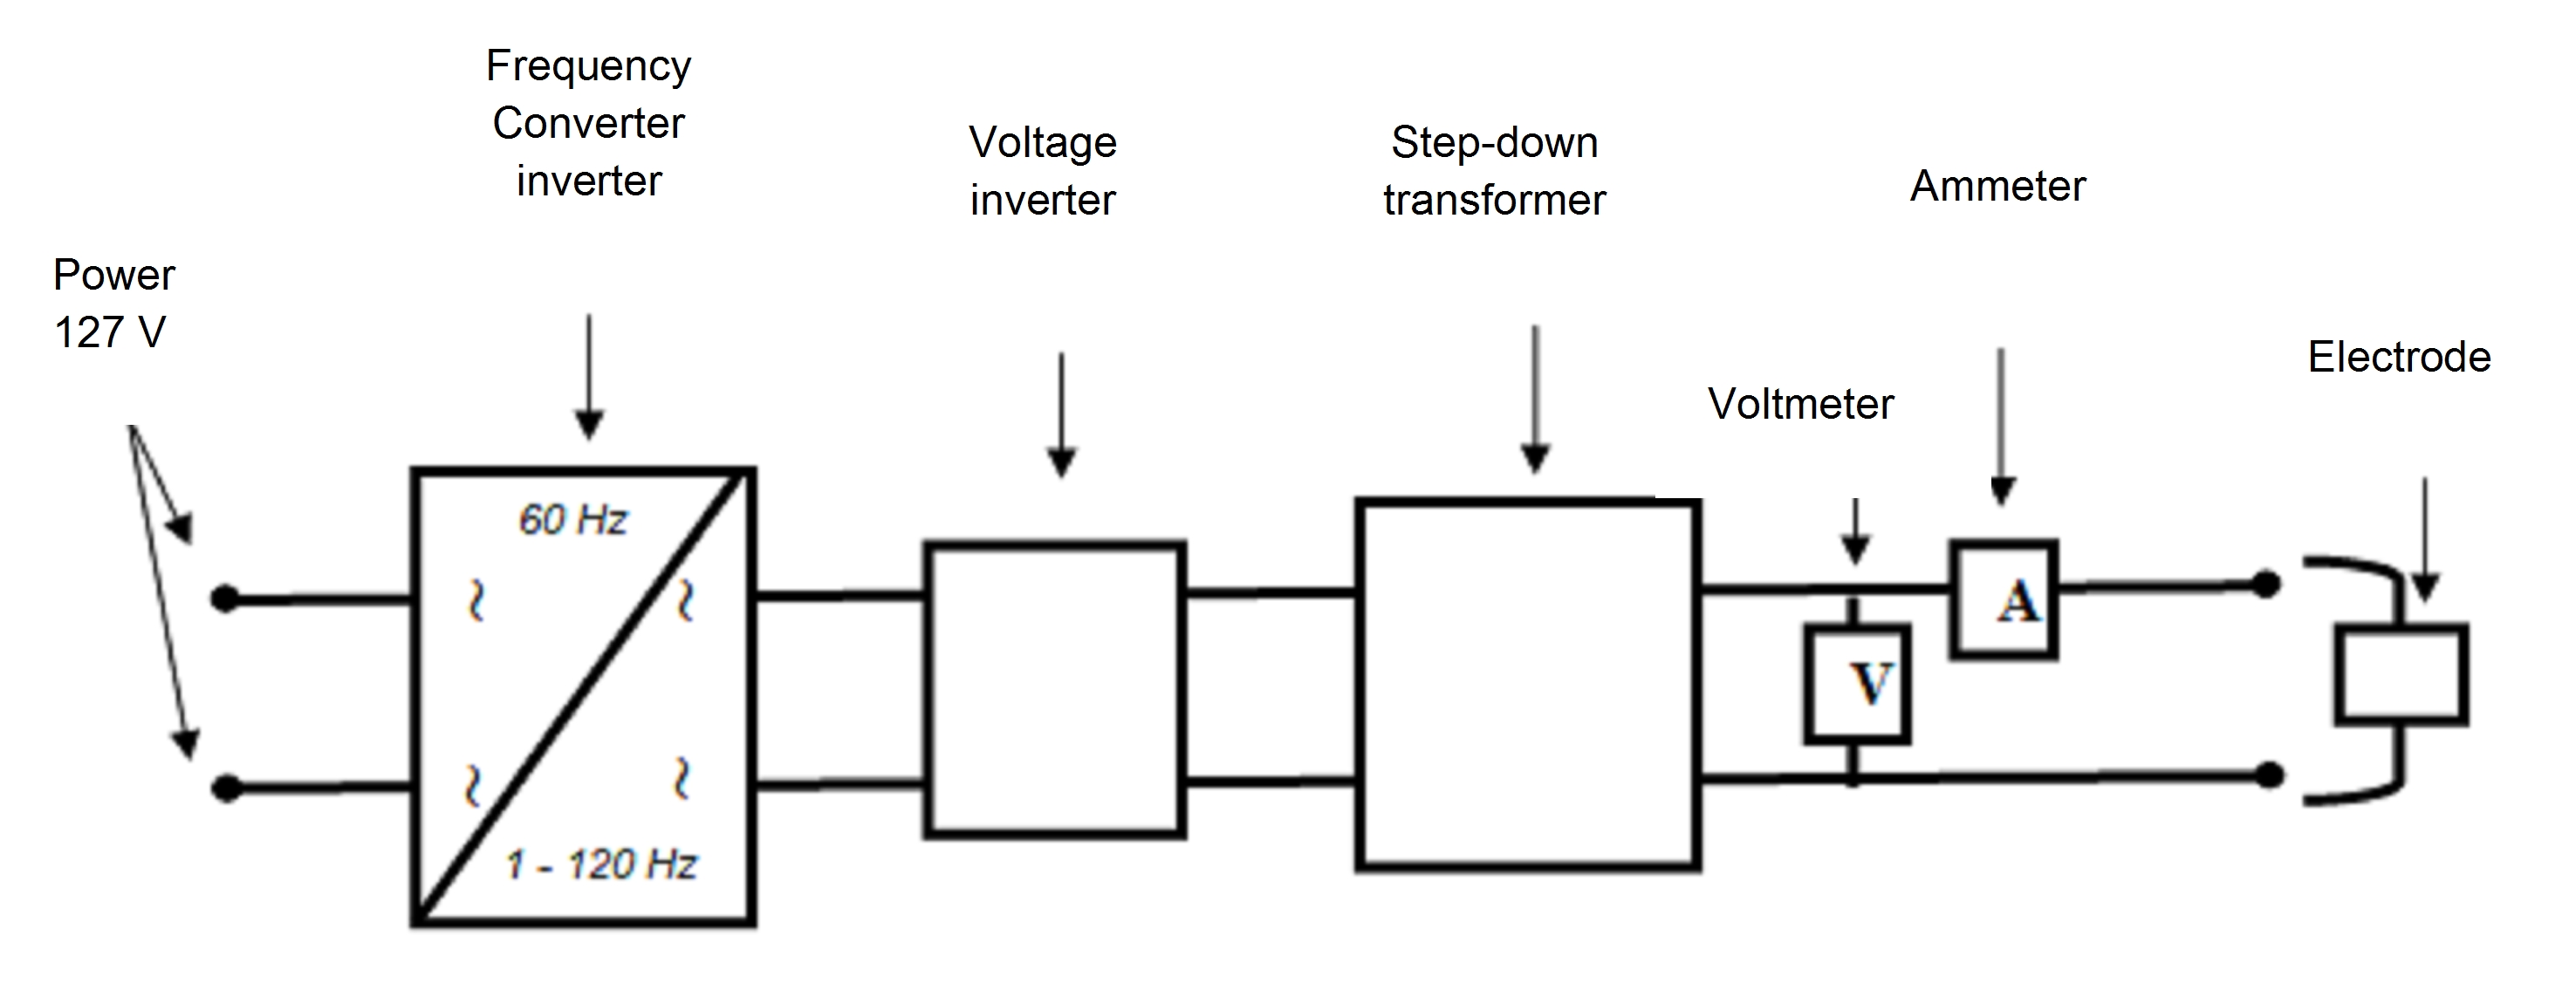 Electrolytic Treatment Of Wastewater In The Oil Industry Intechopen Smart Chocolate Block Schematic Diagram Electronic Circuits Figure 5